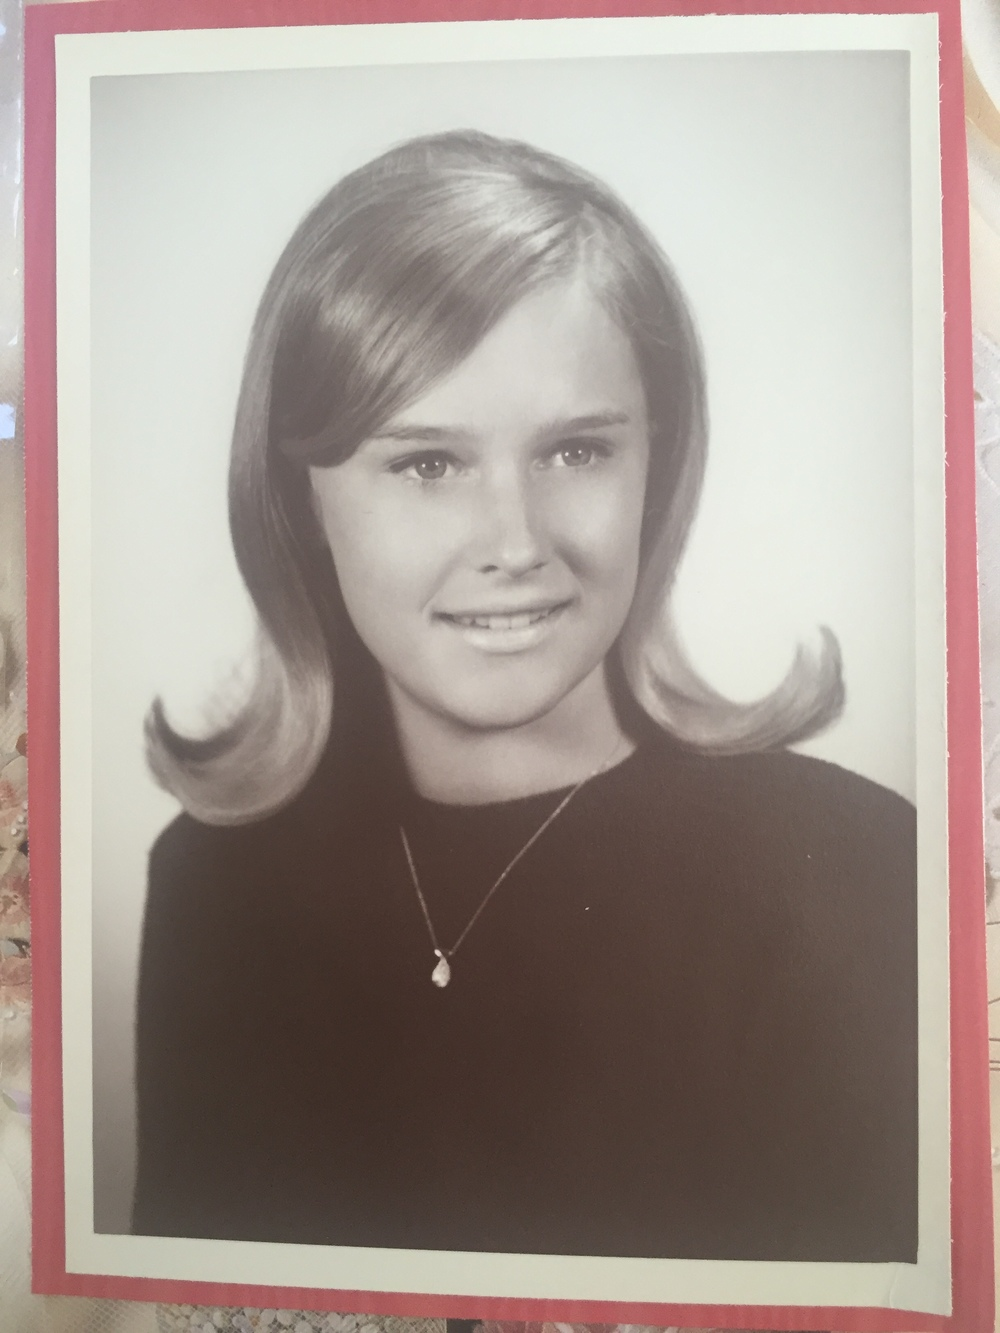 Debbie Clifford in 1968, age 18